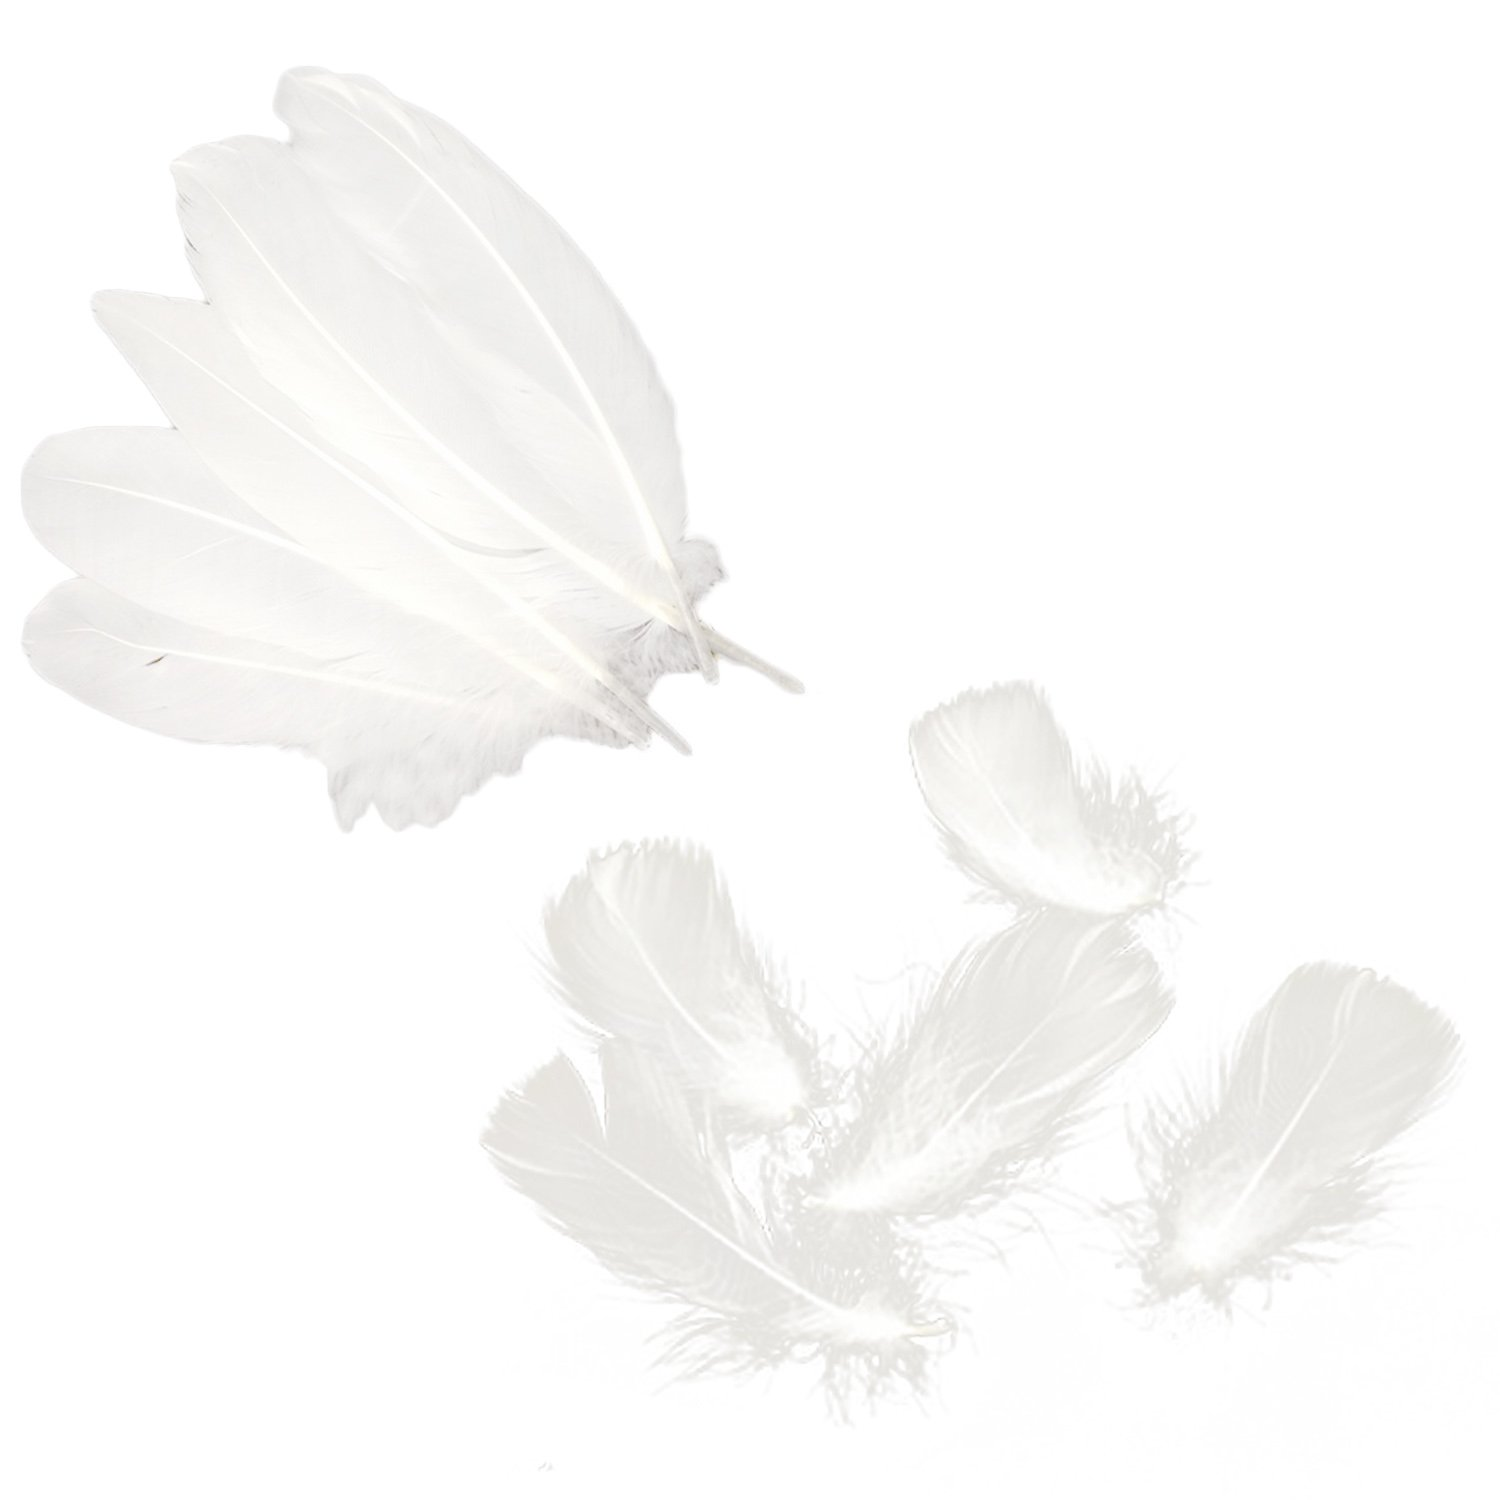 200pcs Natural White Feathers for Home Wedding Festival Party Decor DIY Craft Handmade Project Accessories Clothes Bag Decorations Migavan